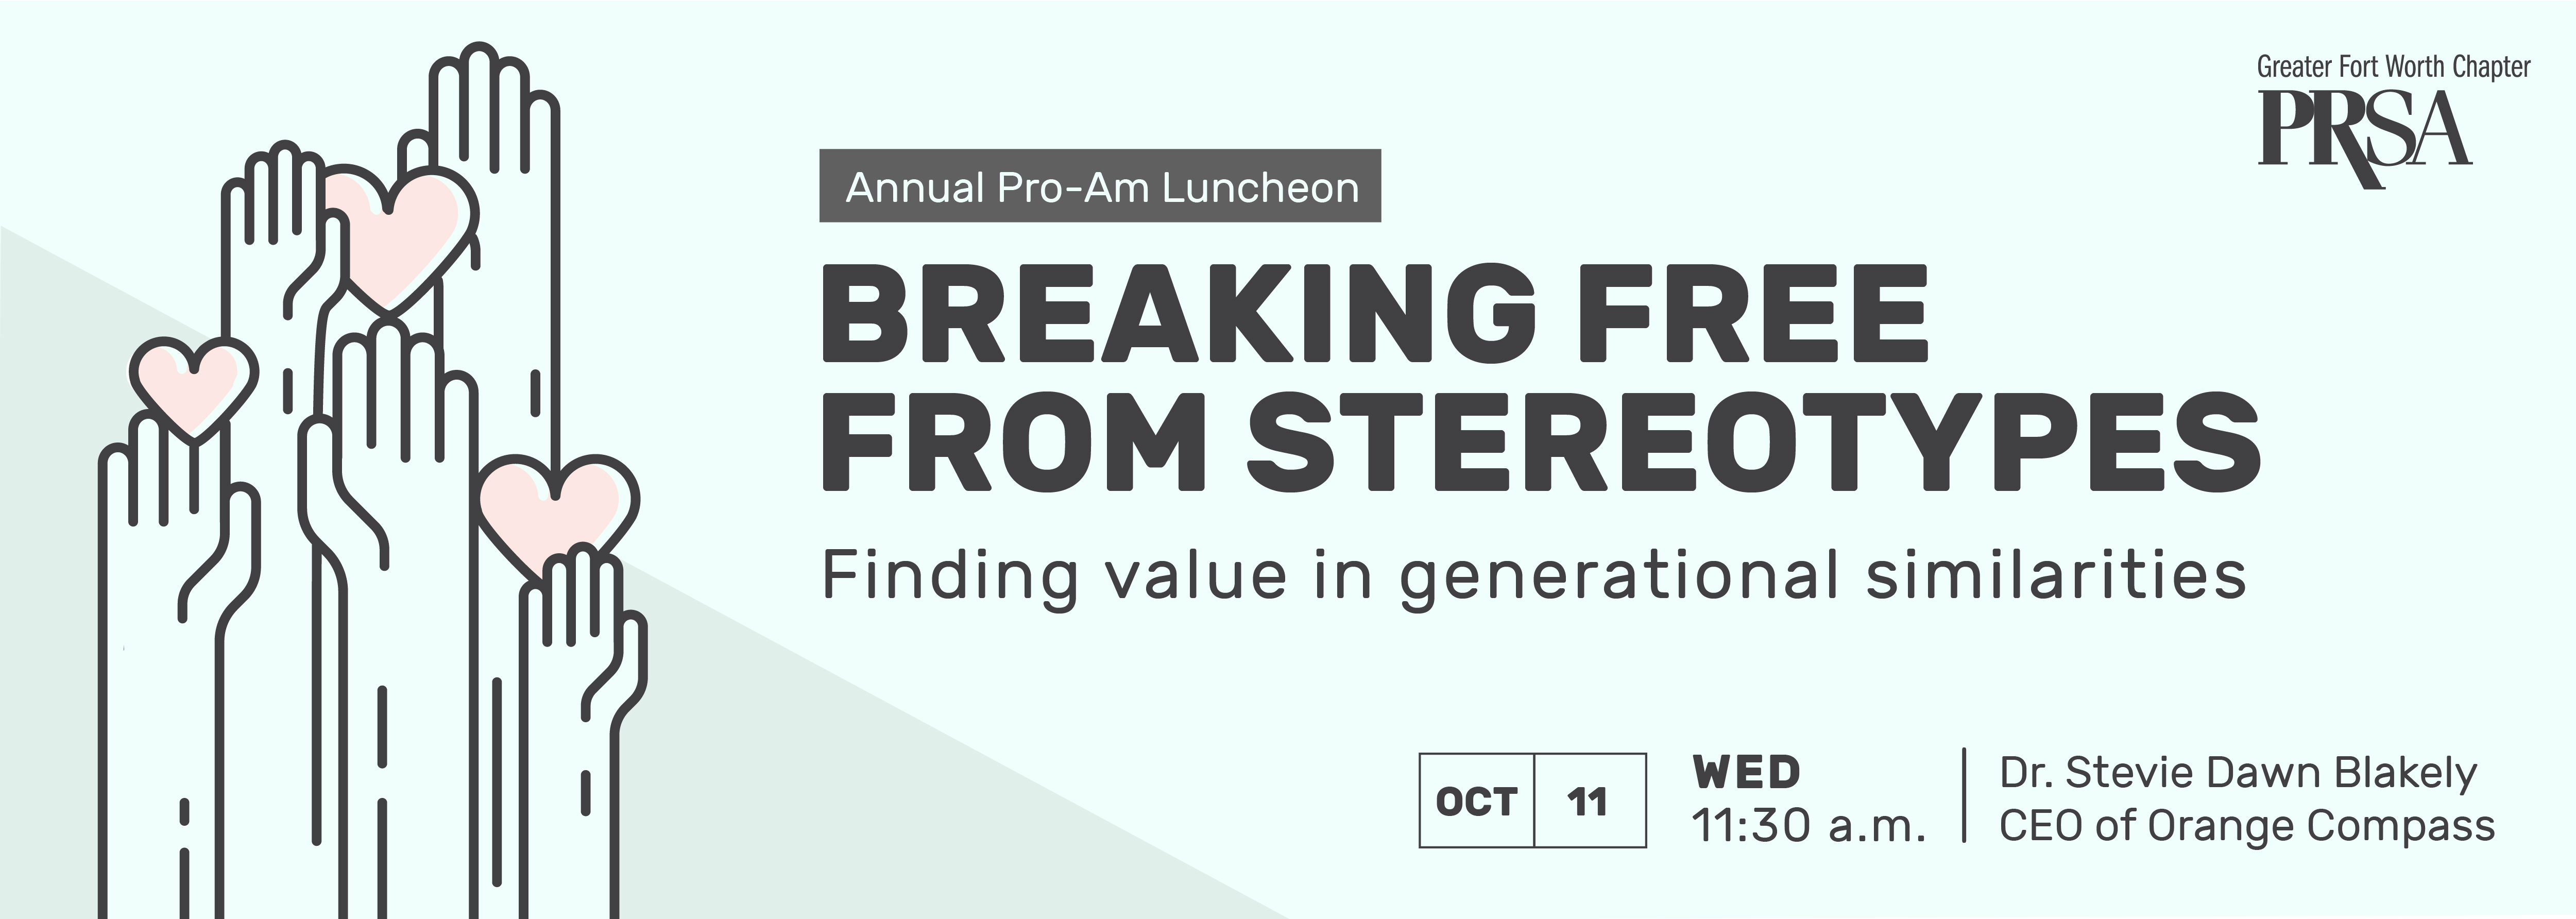 Breaking free from stereotypes; Finding value in generational similarities